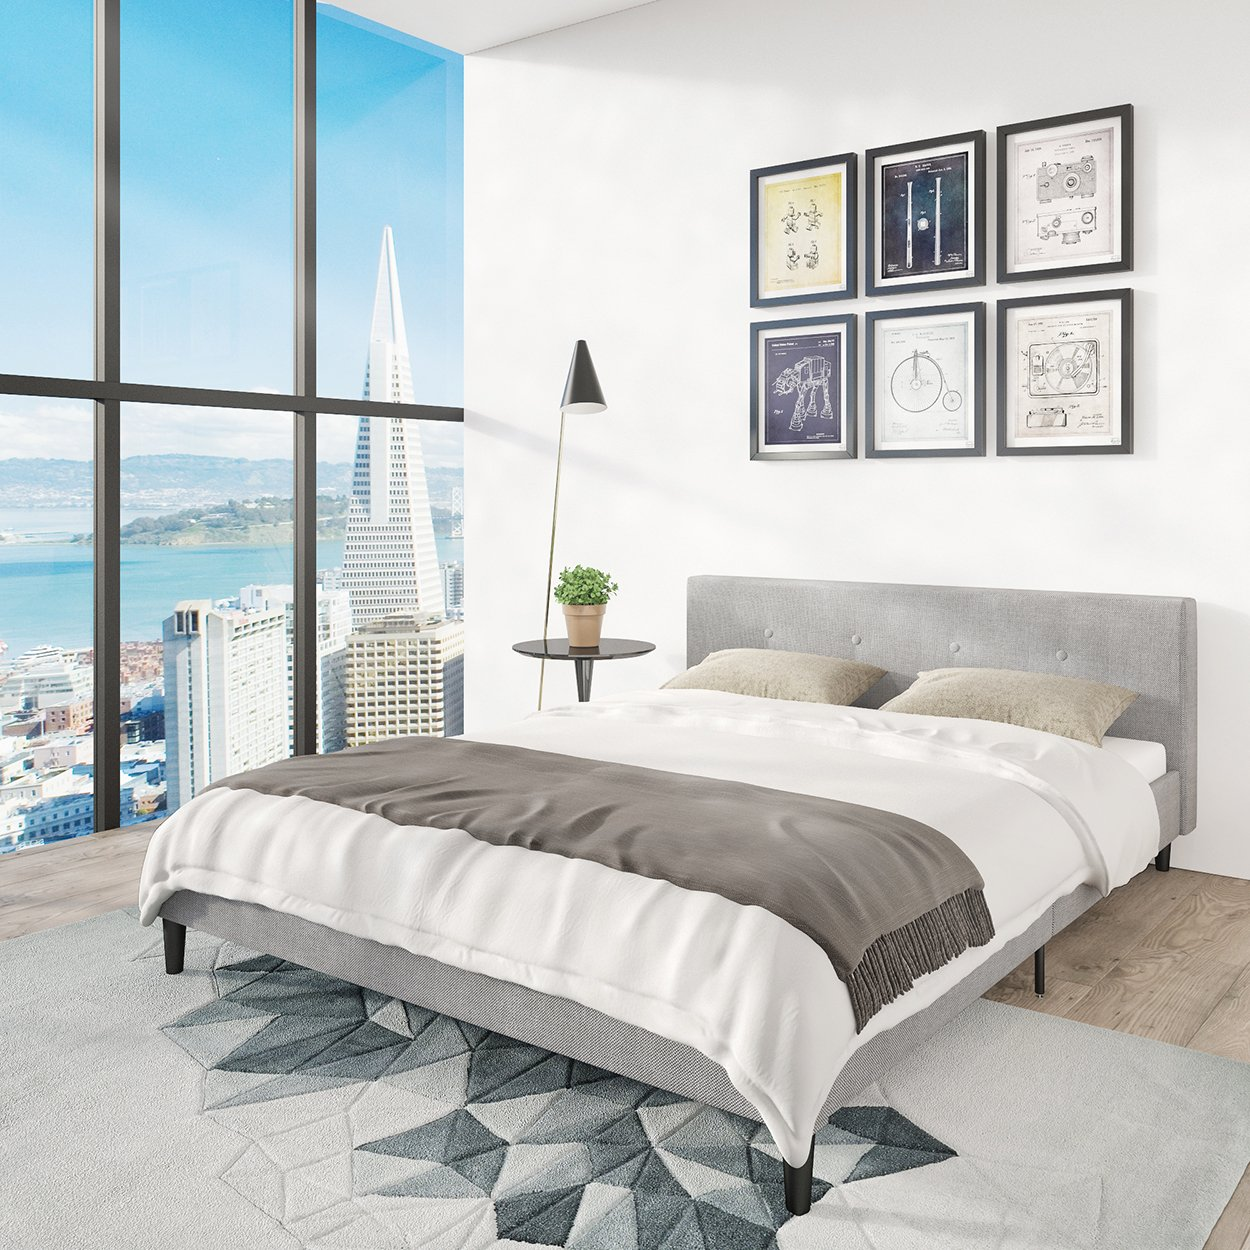 san francisco queen bed frame upholstered low profile headboard platform bedframe gray linen modern style silver grey cloth bedroom mattress furniture - Bed Frames With Mattress Included